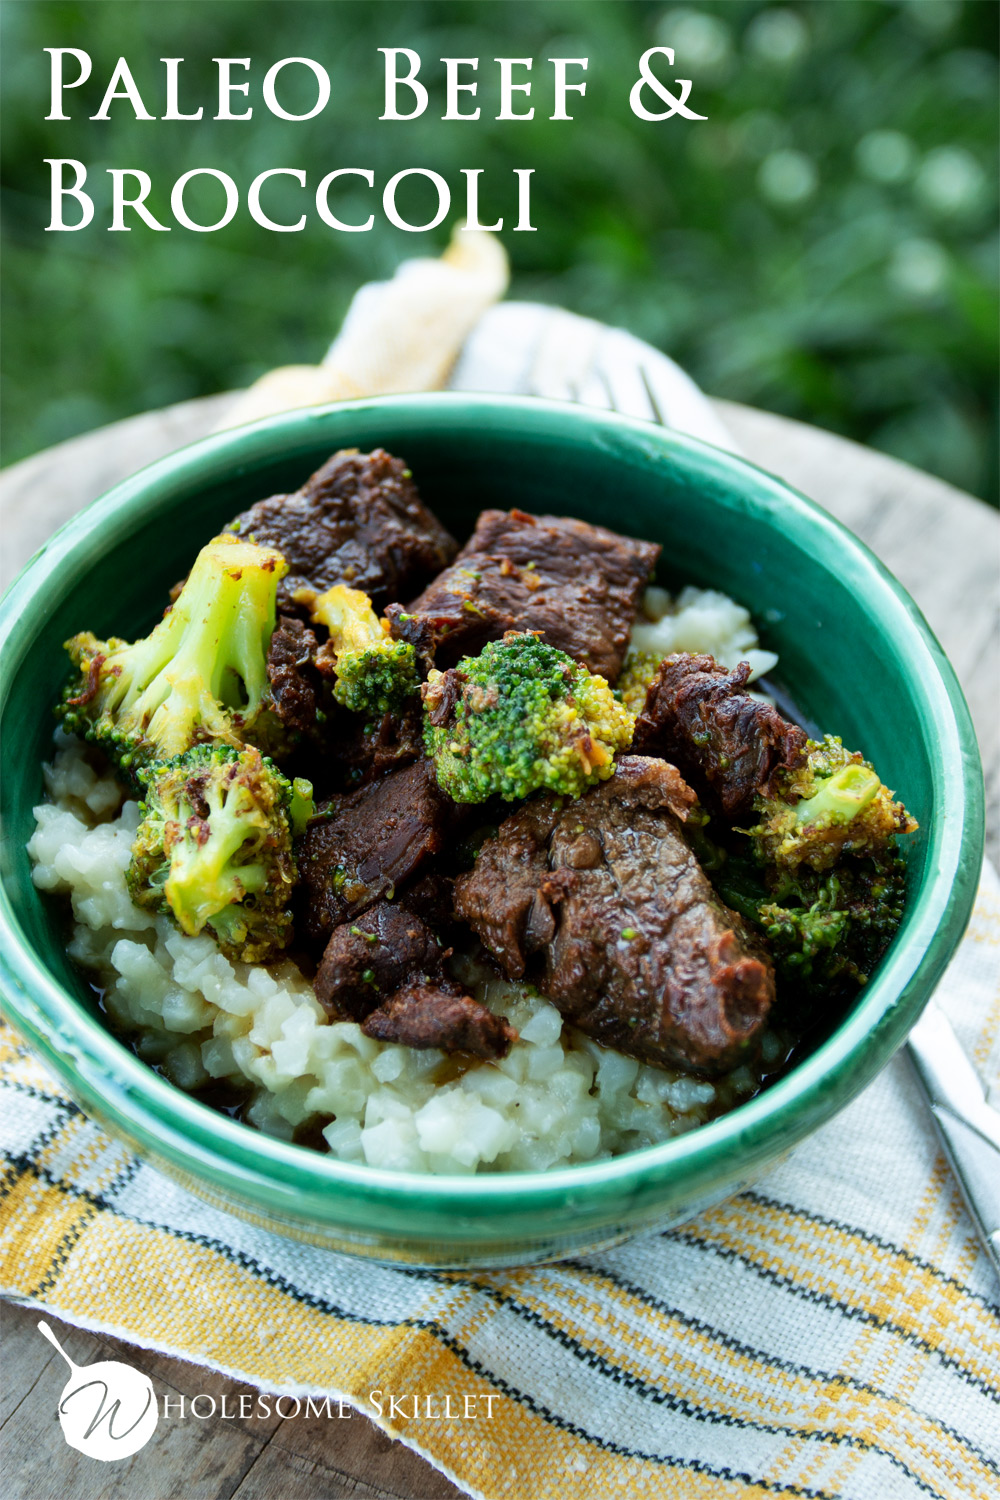 Delicious Beef and Broccoli that is paleo and gluten-free | Get the recipe from Wholesome Skillet